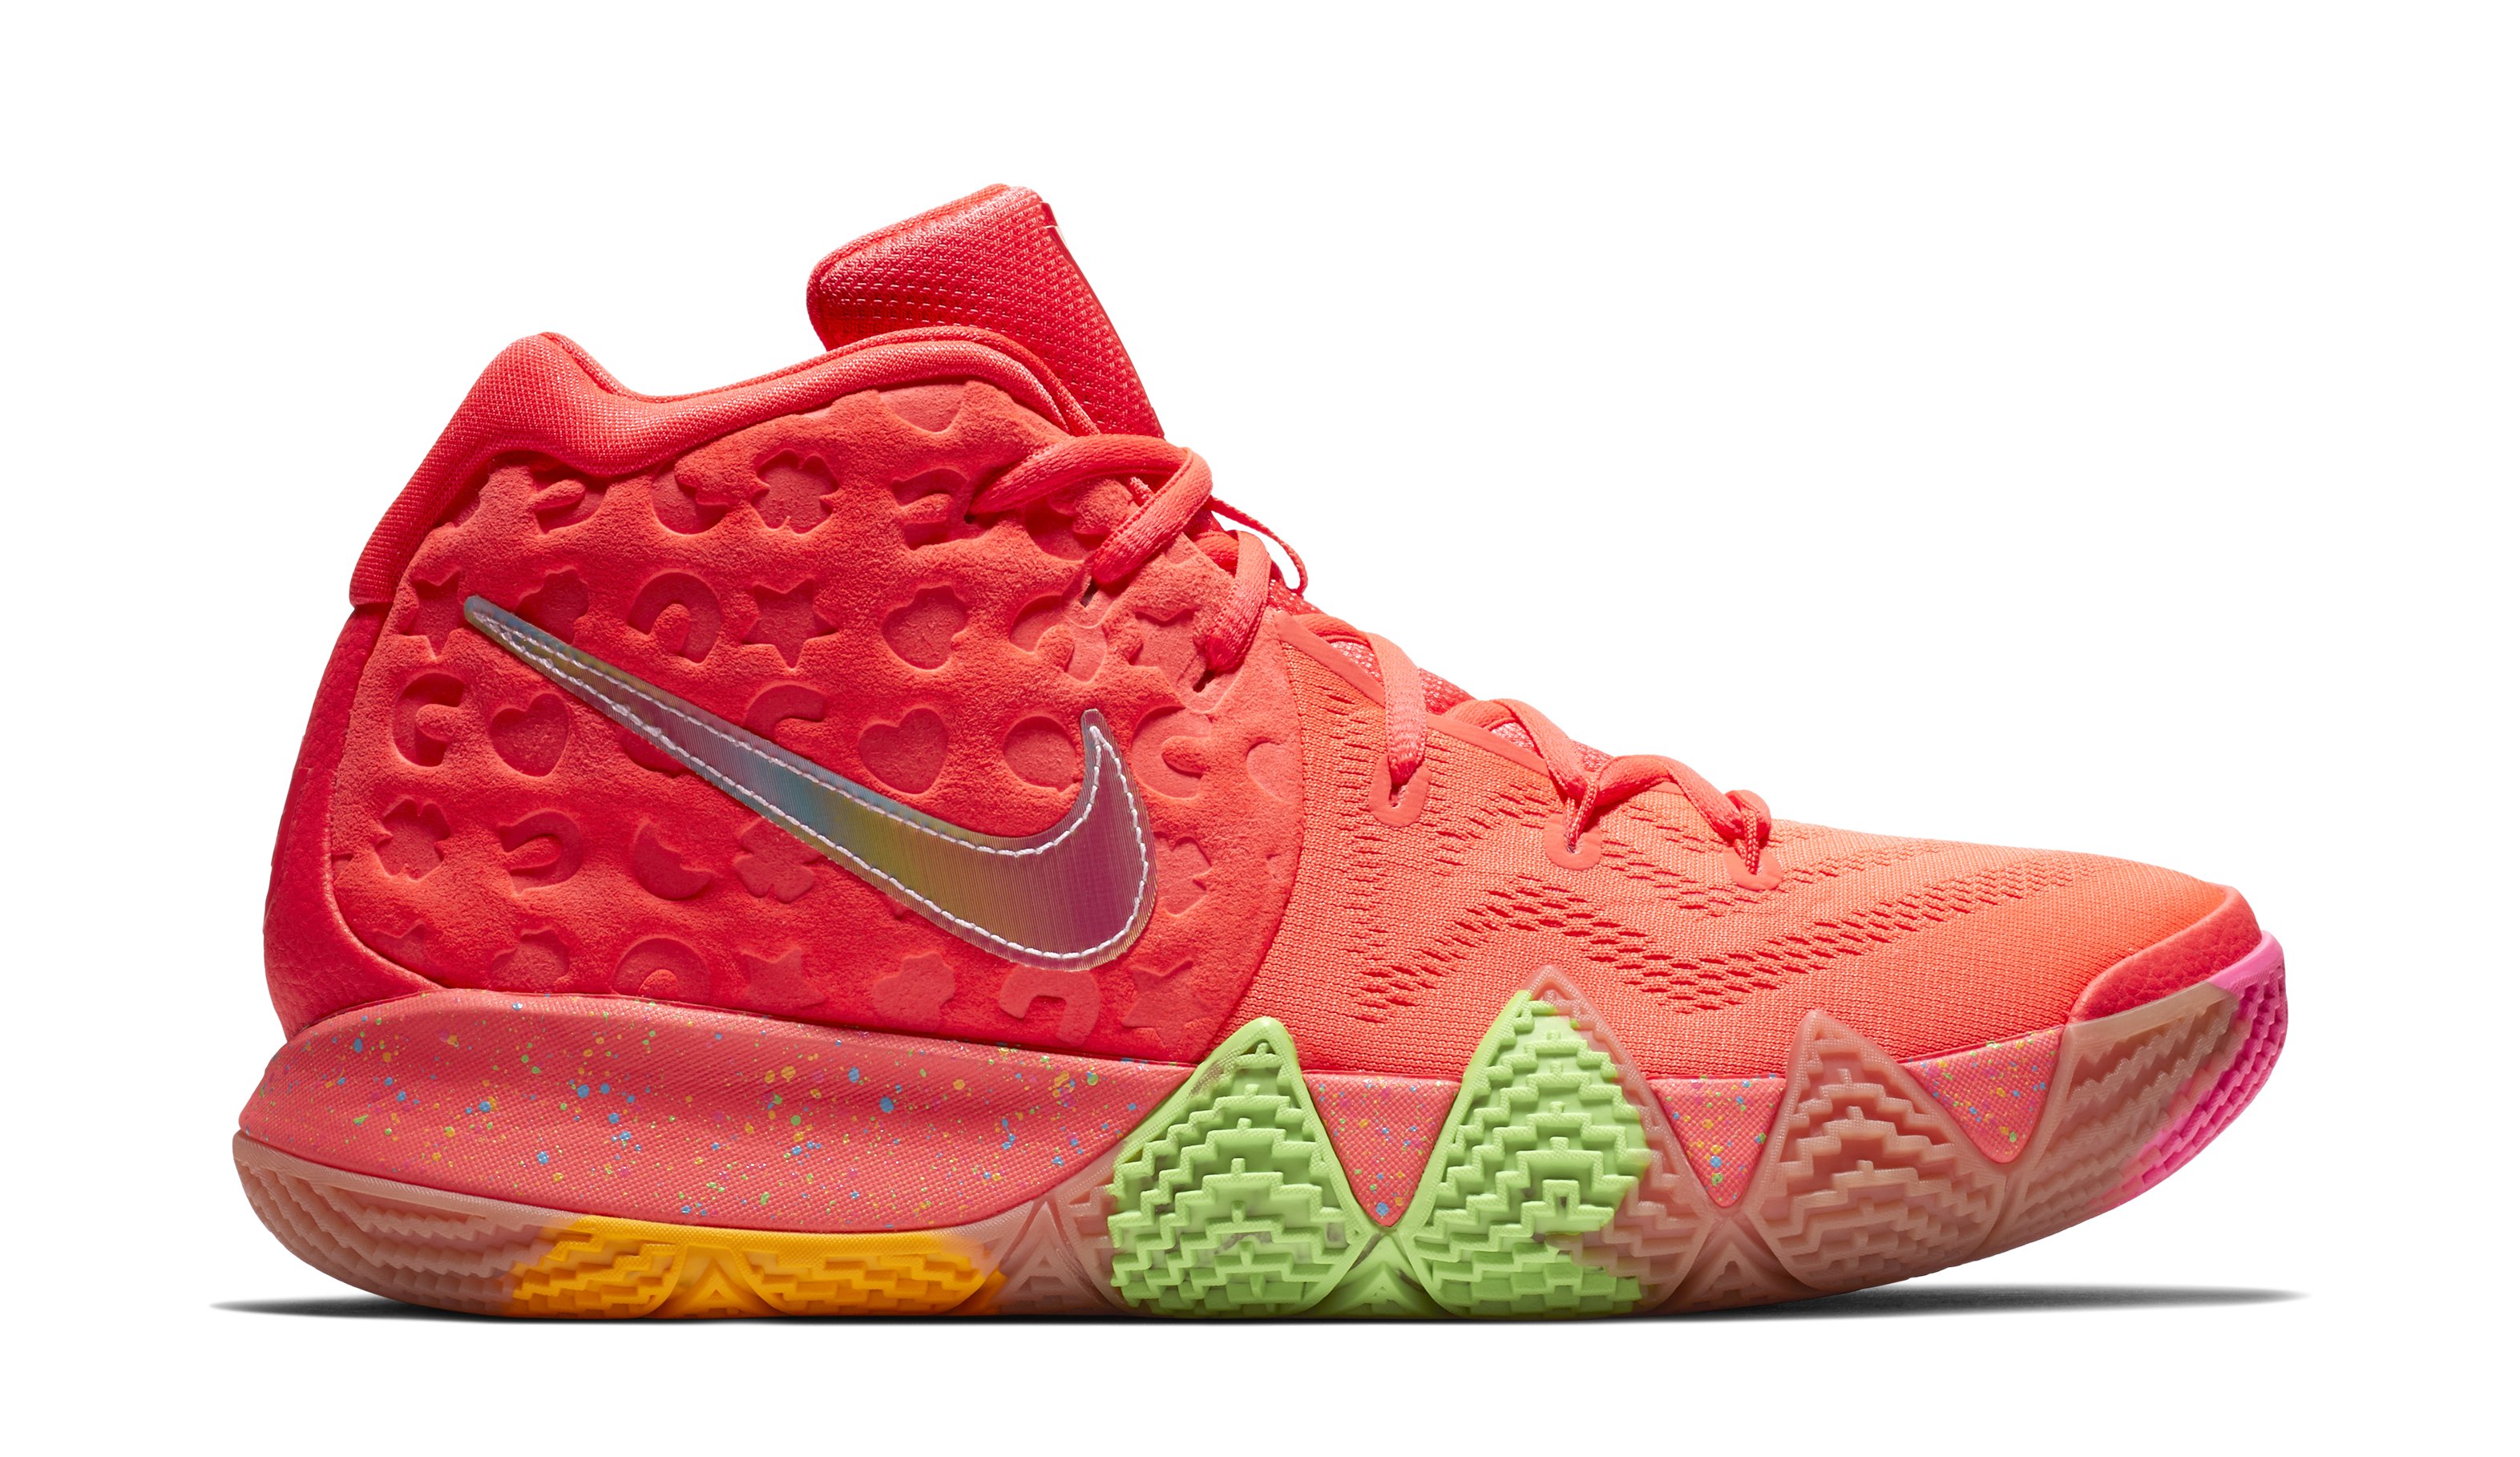 d4c7892fa04d Nike Kyrie 4  Cereal Pack  House of Hoops Early Release Date